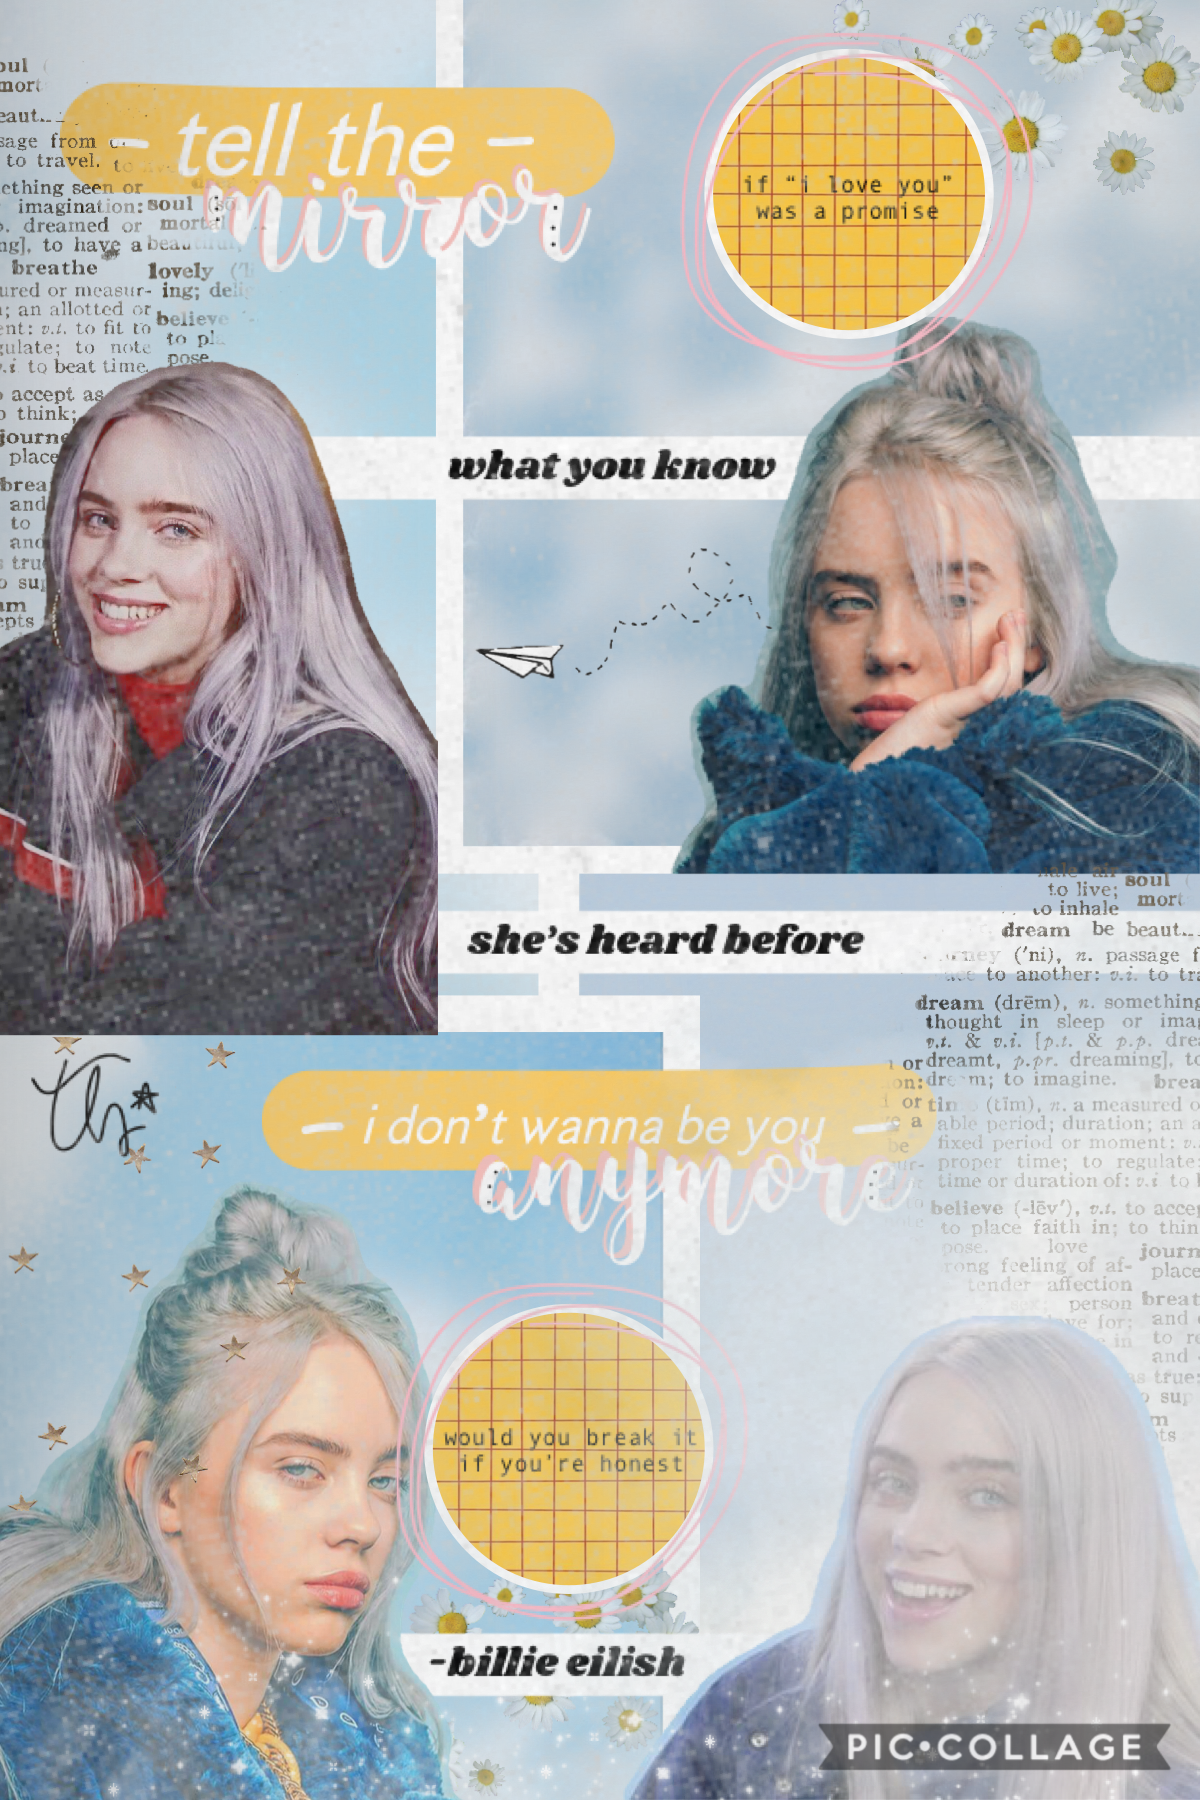 hey シ so this is kind of a basic style but i'm trying to do different styles so it's gonna be interesting ahahahah 😂 this quote is from idontwannabeyouanymore by billie eilishhhh and yes i'm kind of obsessing over her rn ❤️✨